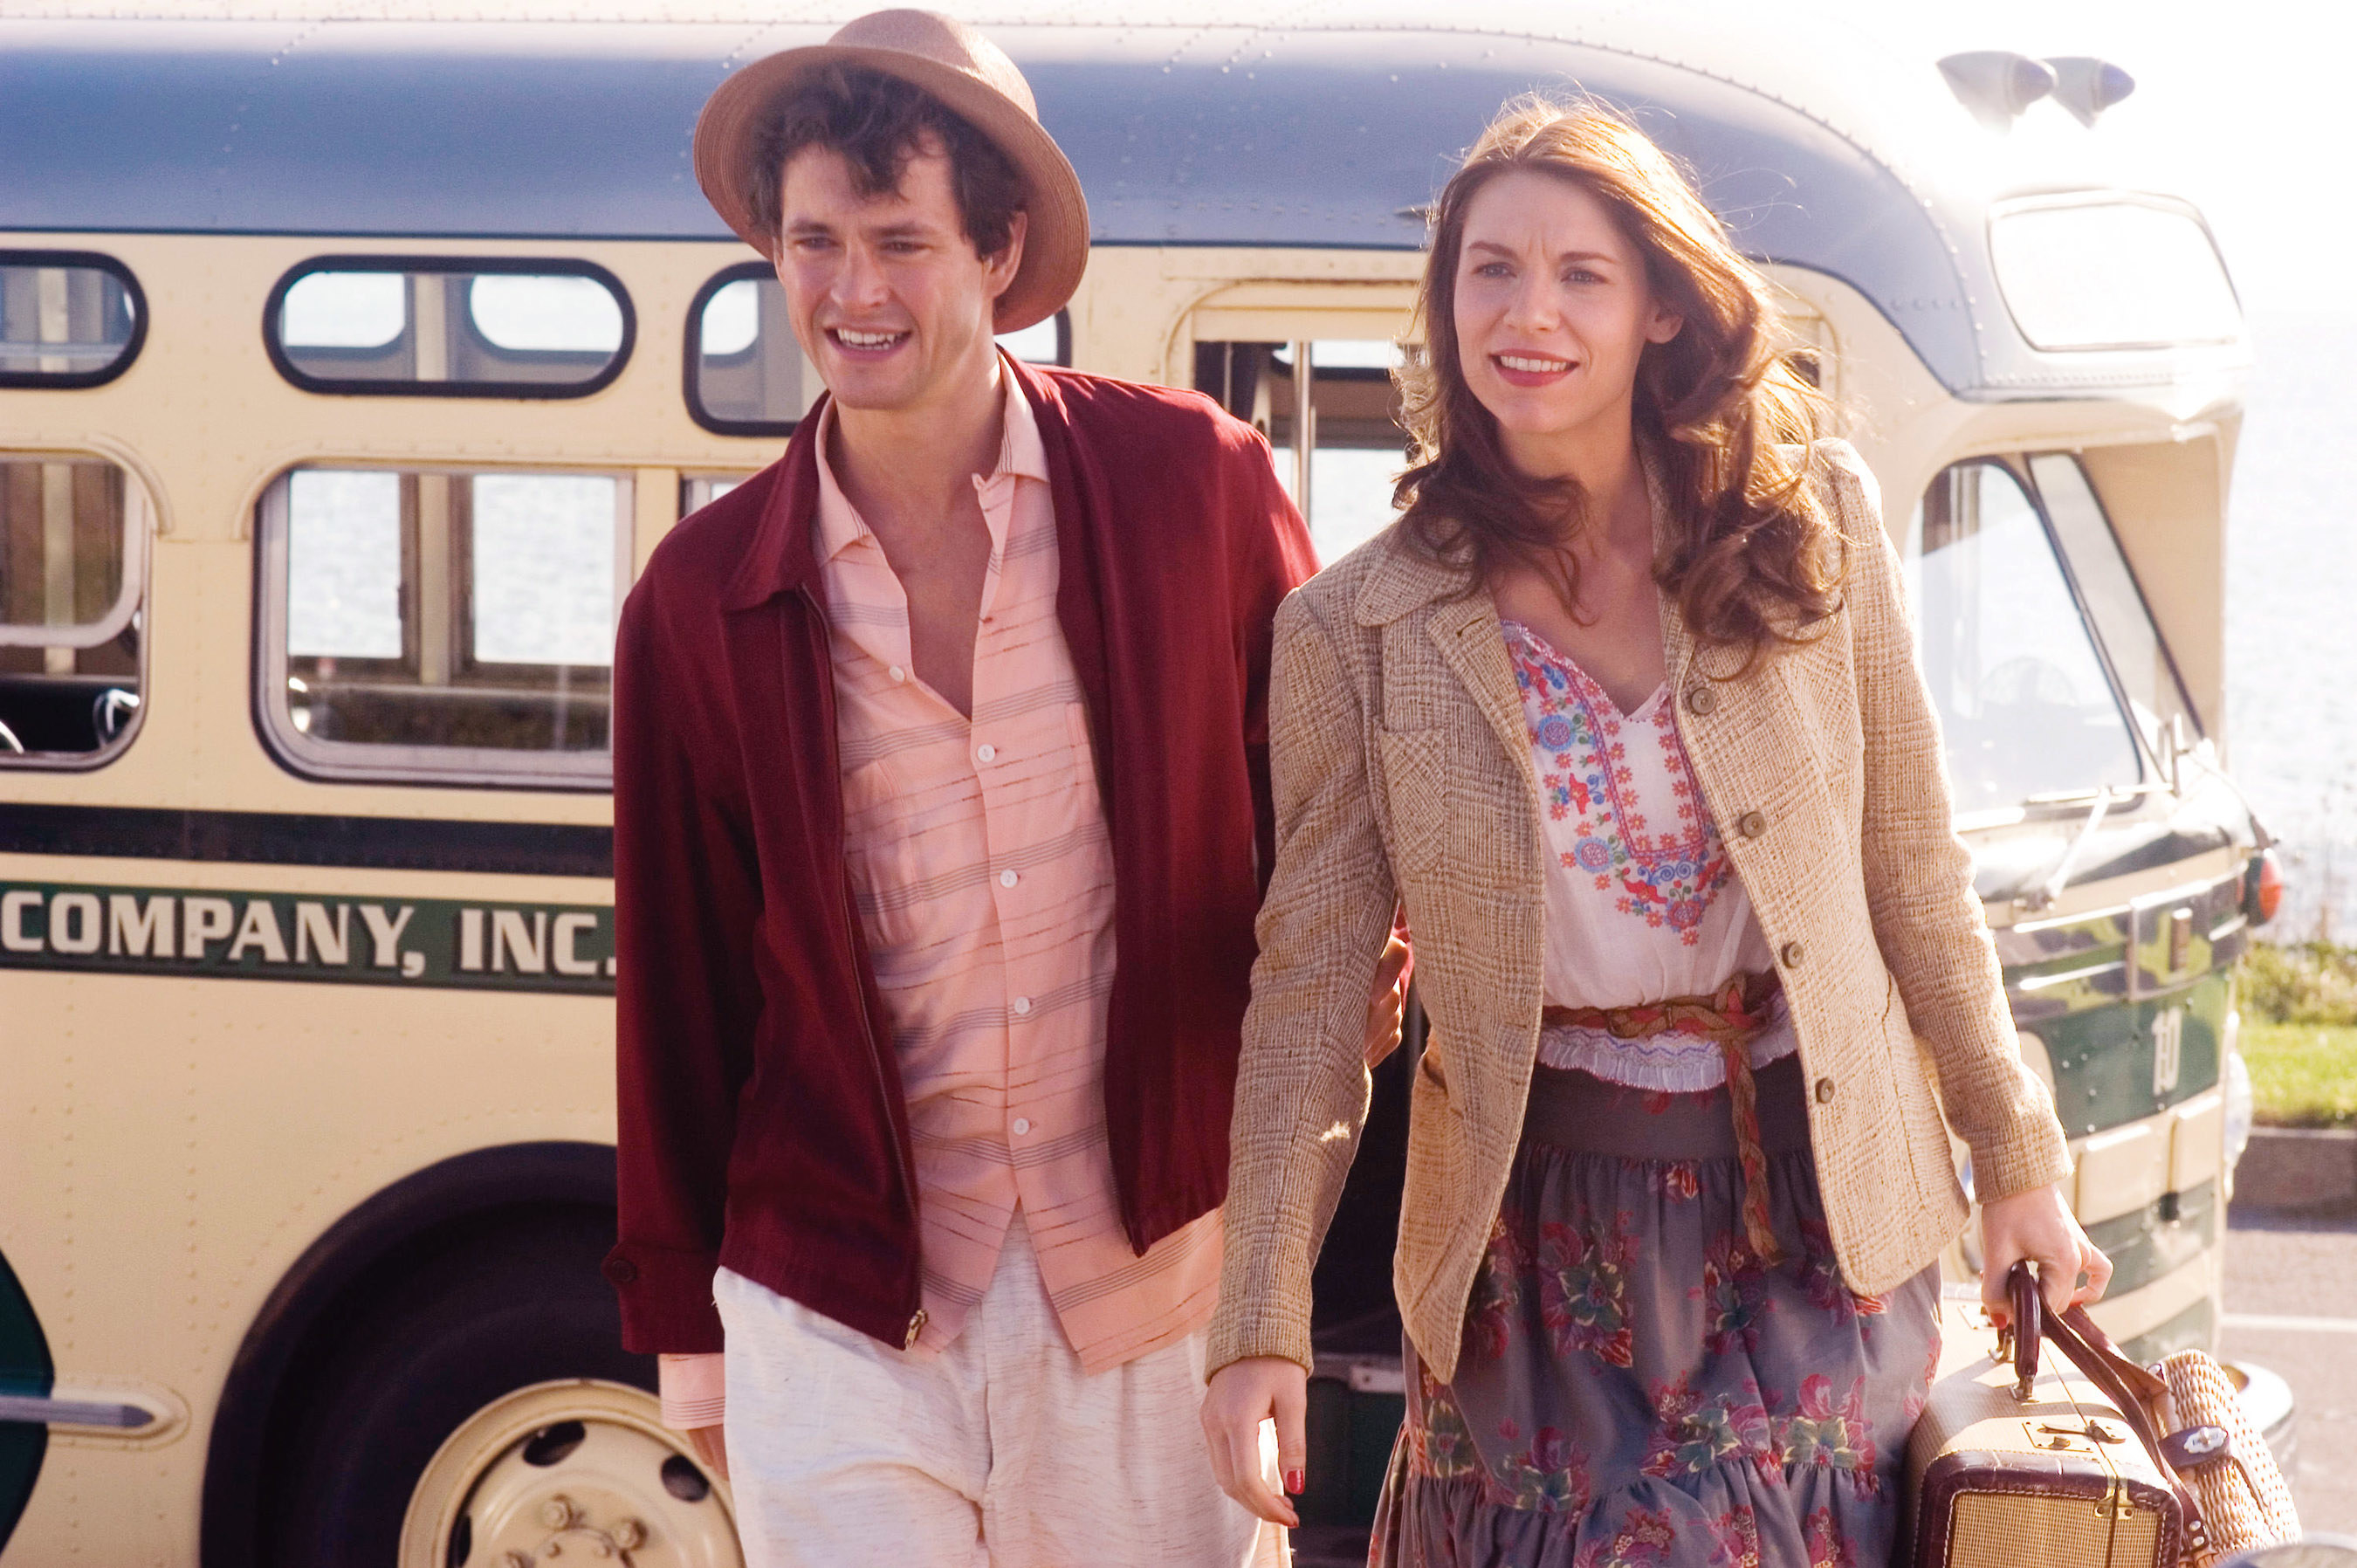 Ann and Buddy get off the bus